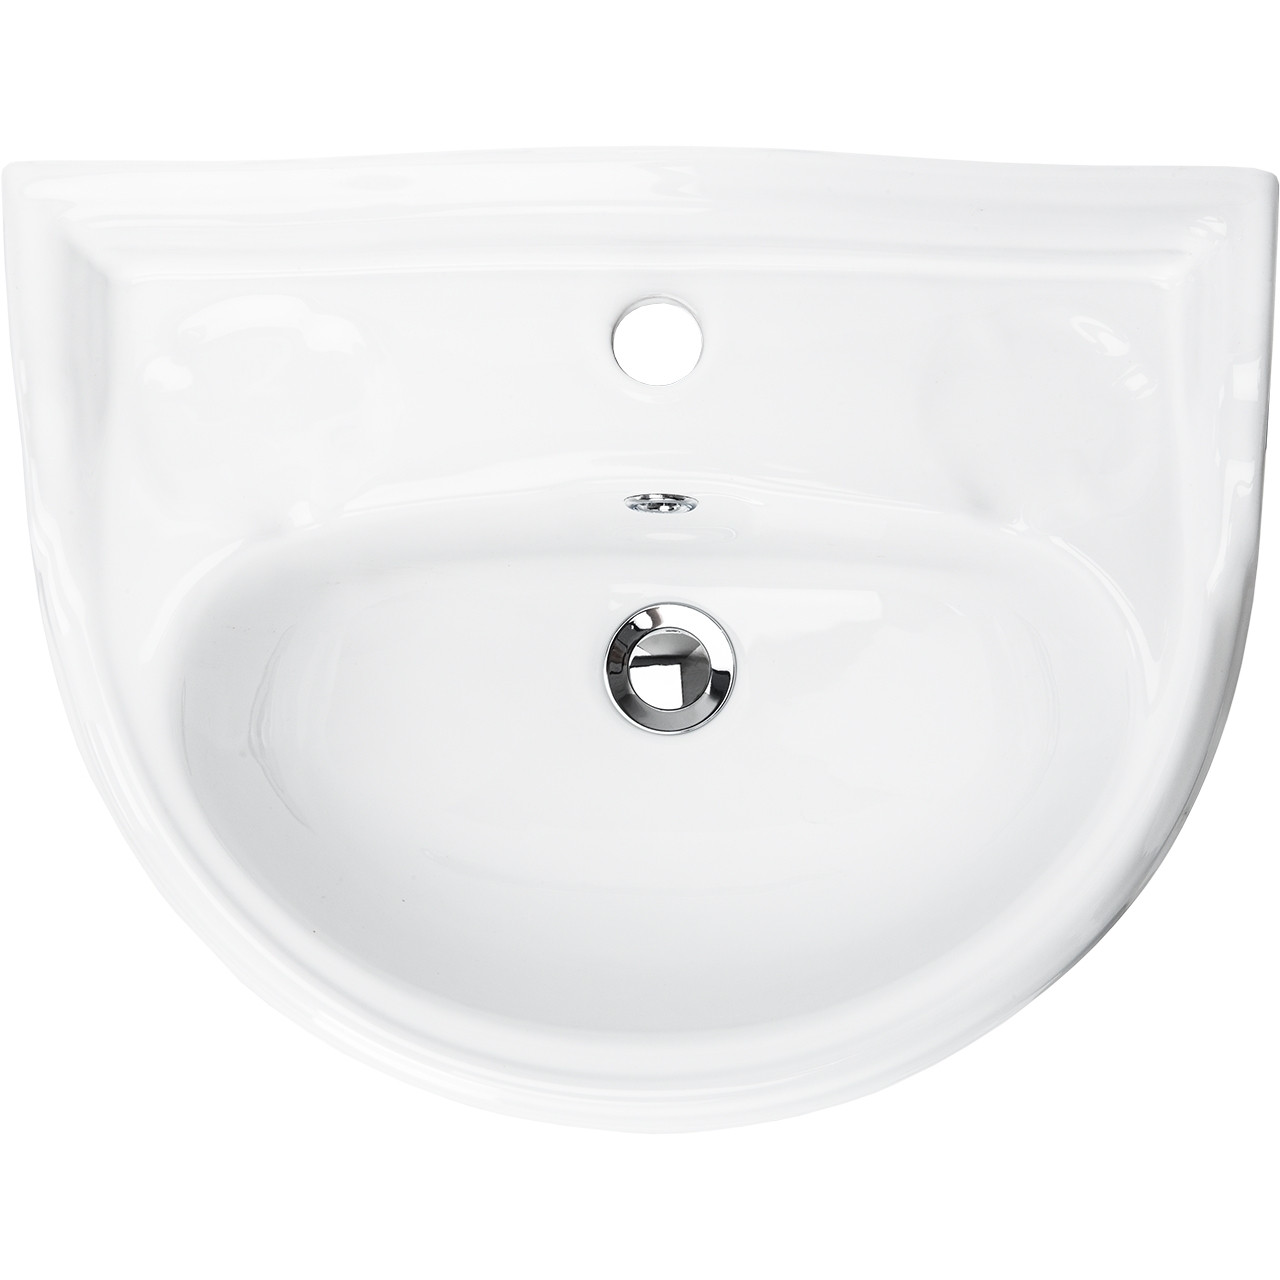 Grosvenor 500mm Basin with 1 Tap Hole and Full Pedestal